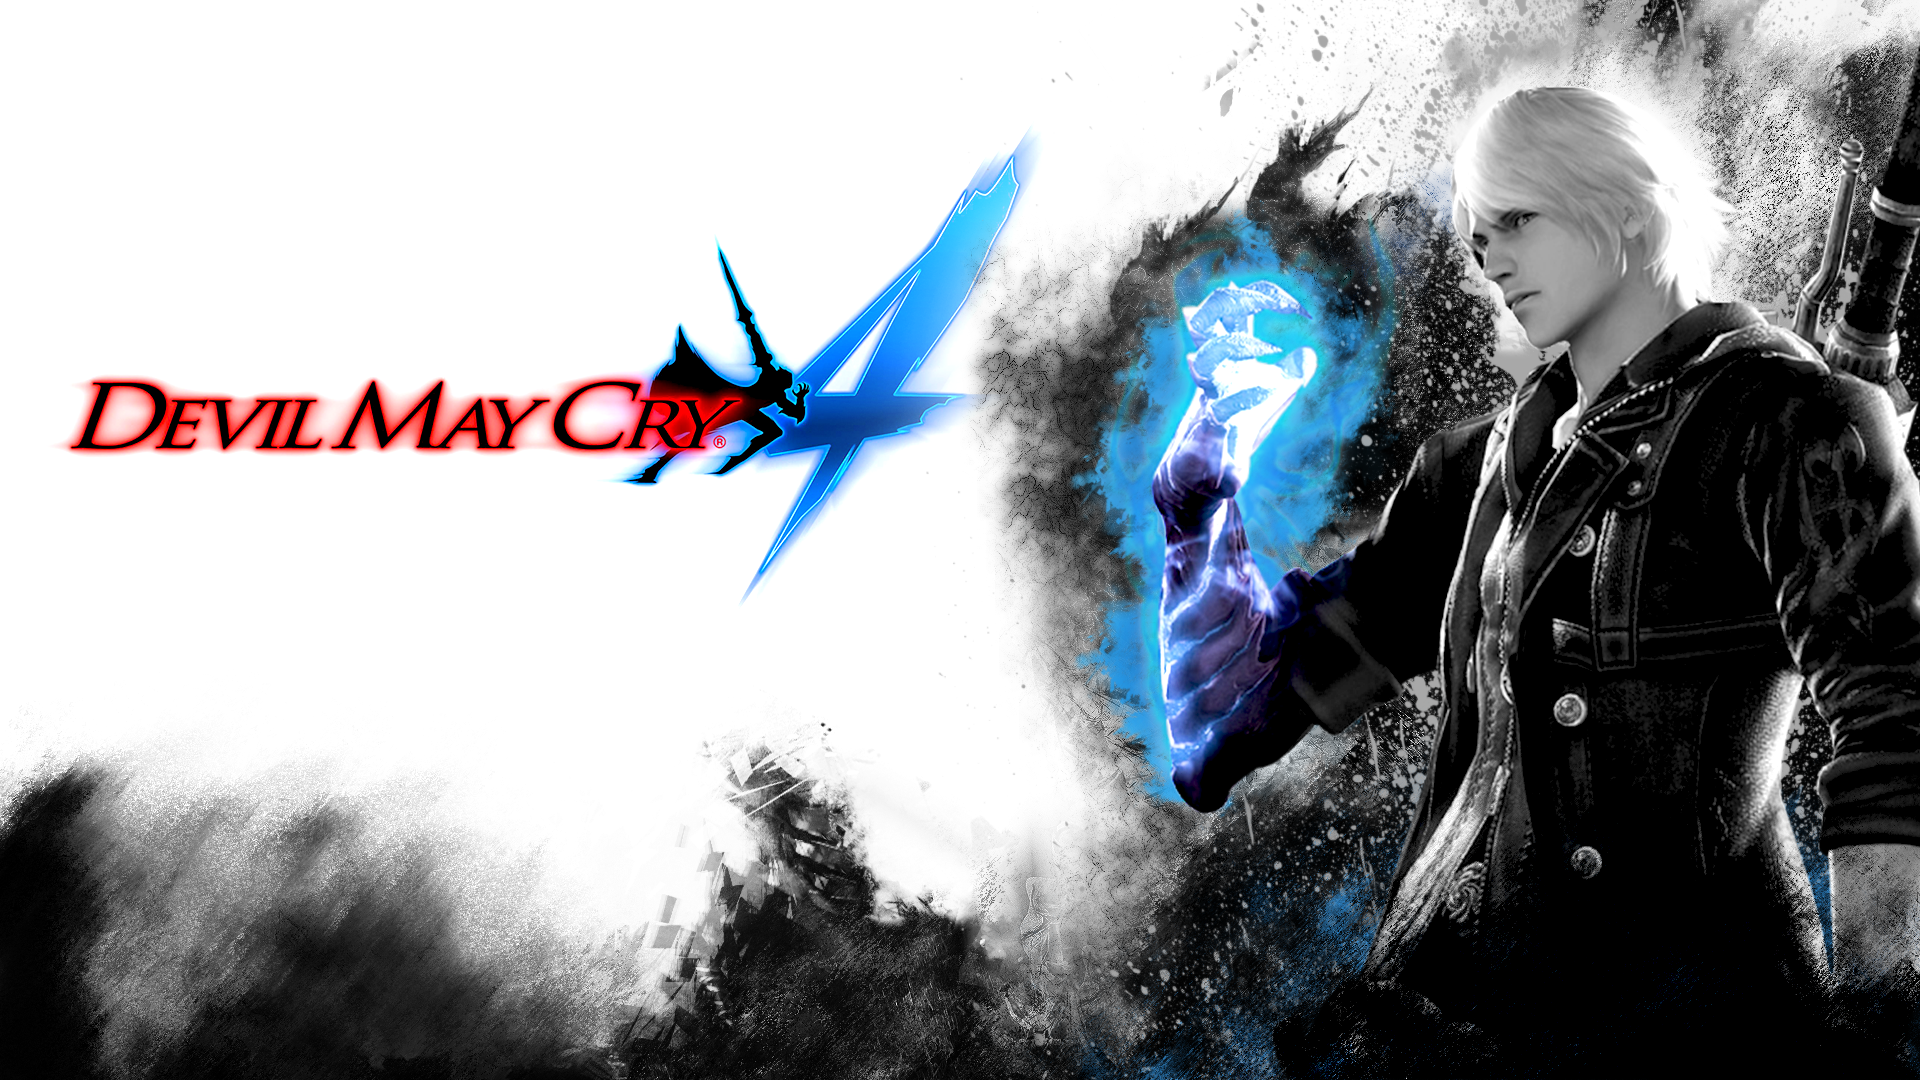 Devil May Cry Wallpapers | Top 65 Devil May Cry Wallpapers